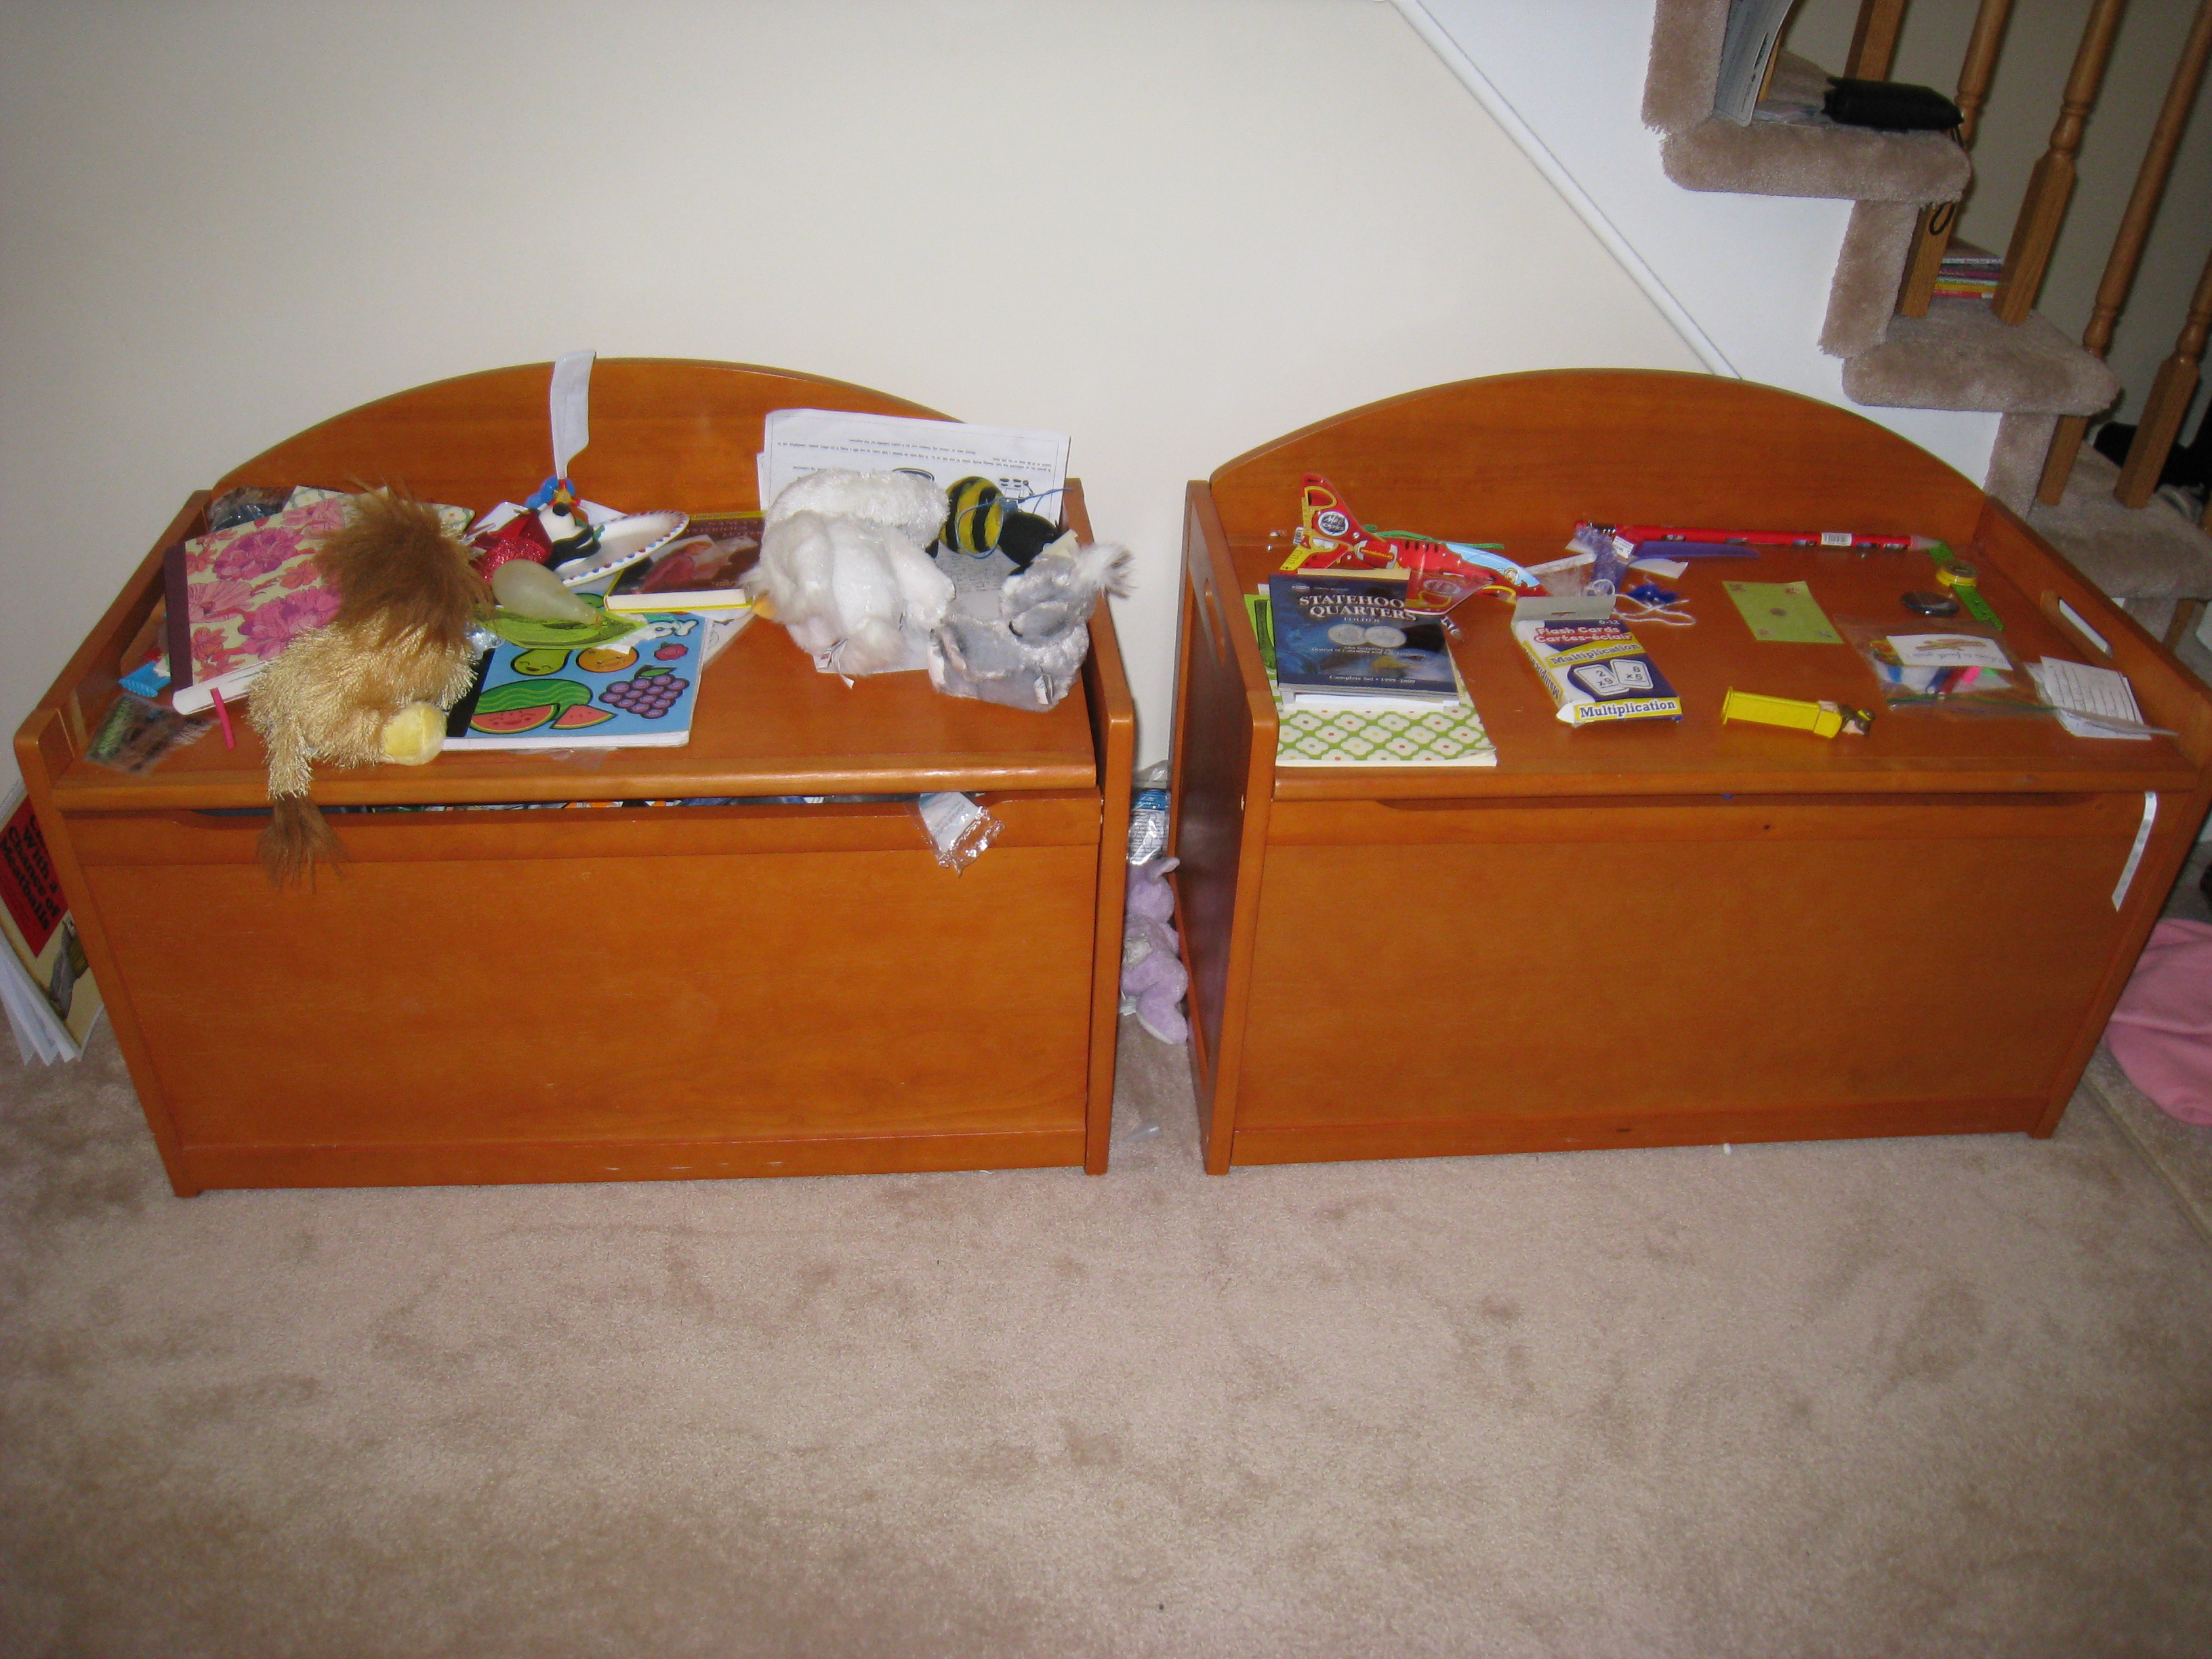 Wonderful Toy Box, Clutter, Organize